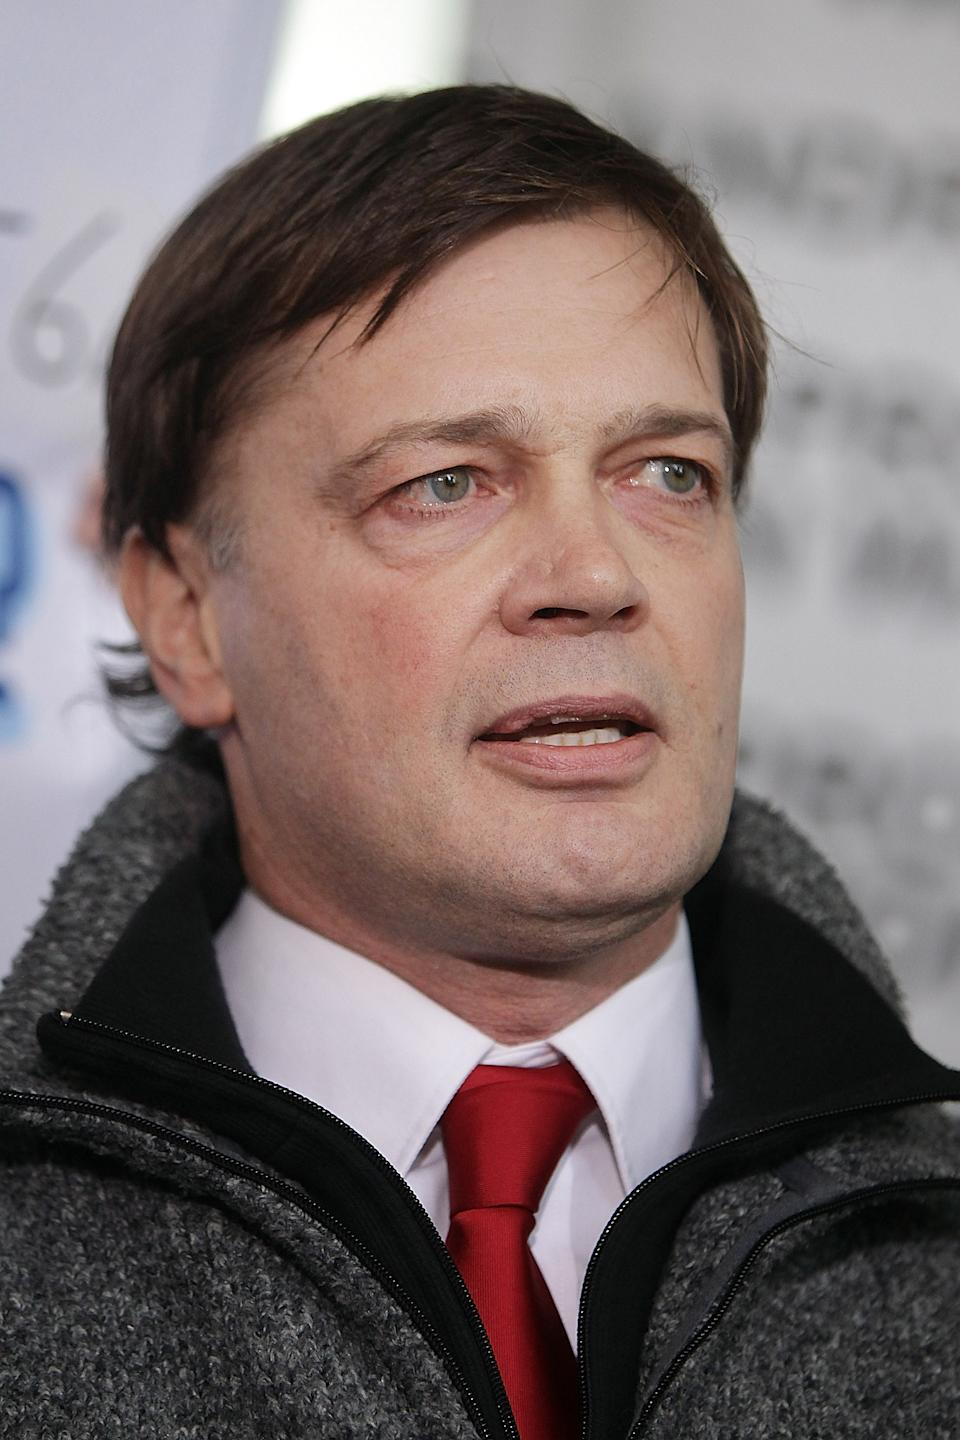 Andrew Wakefield was banned from practising medicine after presenting his notoriously false research where he claimed the measles vaccine leads to autism. Photo: Getty